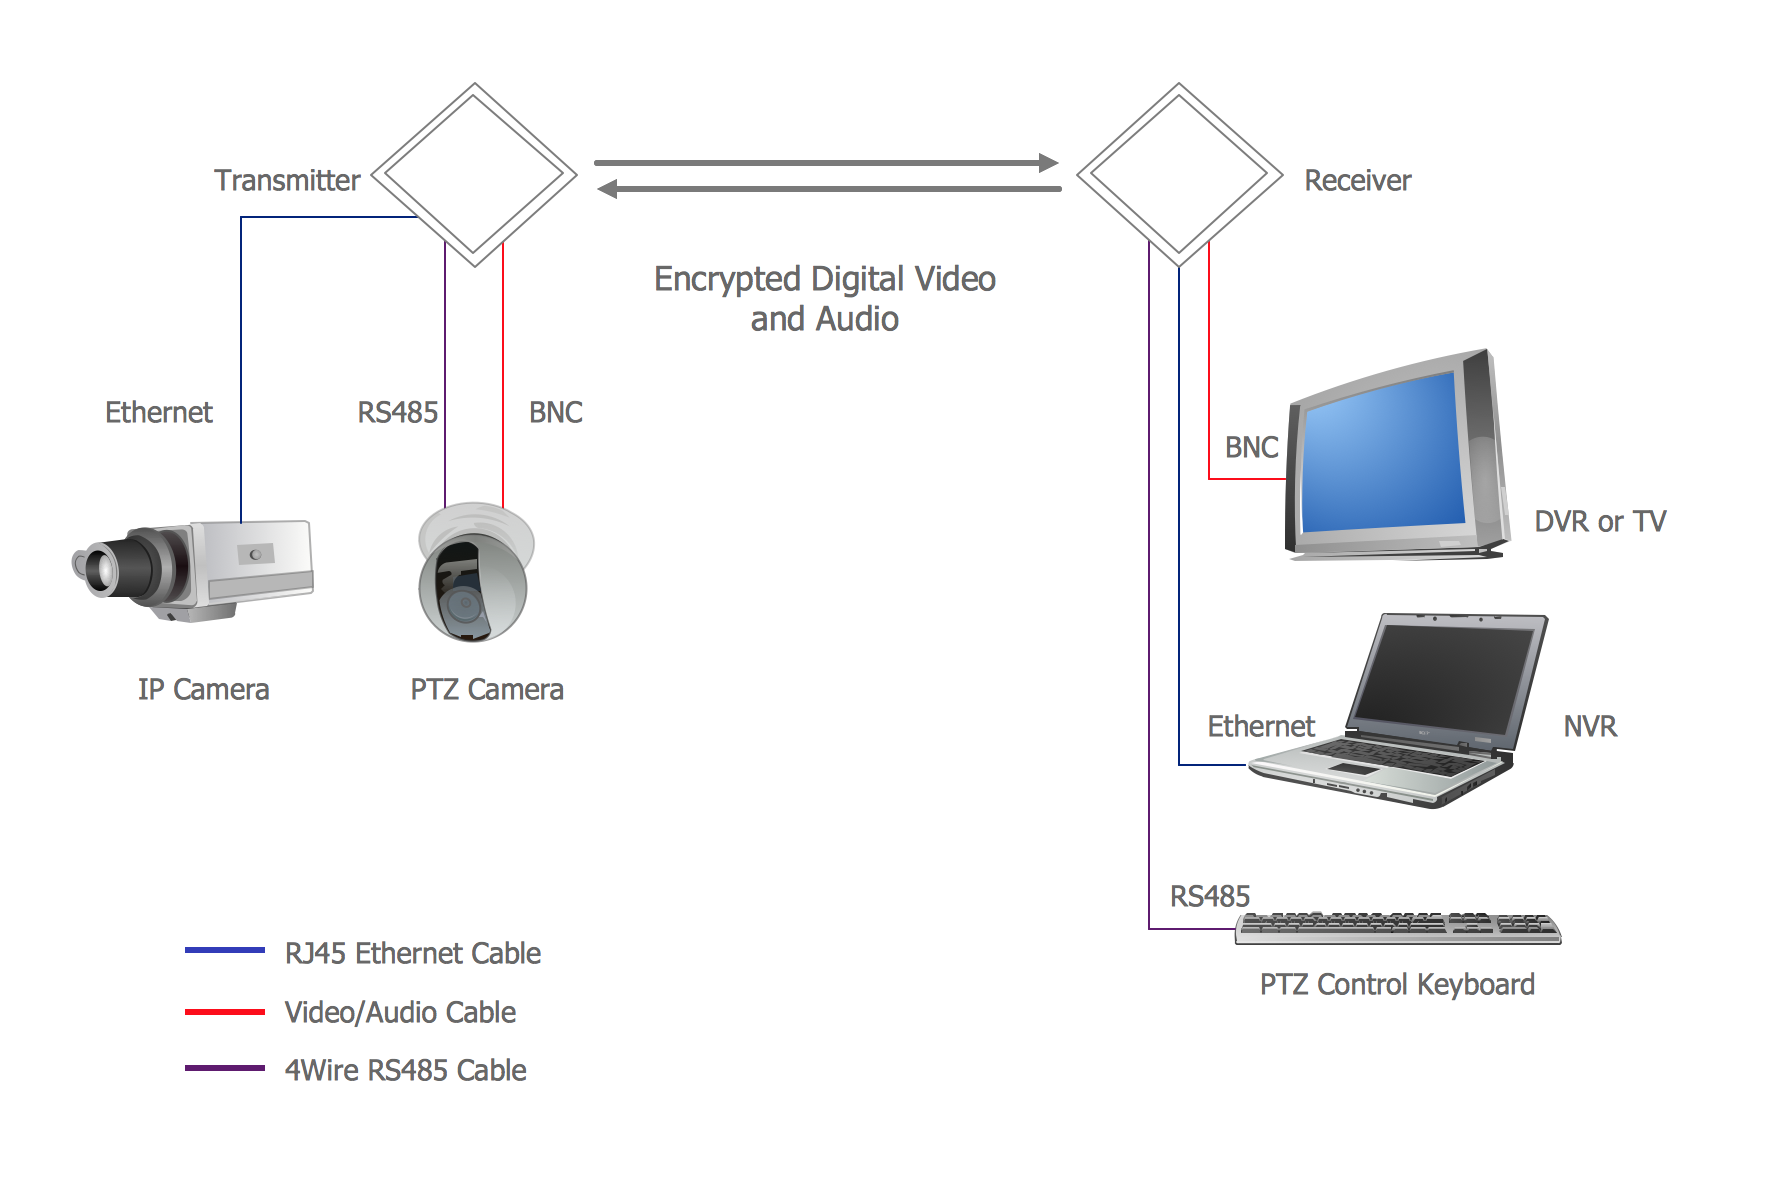 Laptop To Security Camera Wiring Diagram Libraries Ptz Librarywireless Systems Cctv Network Example Wireless